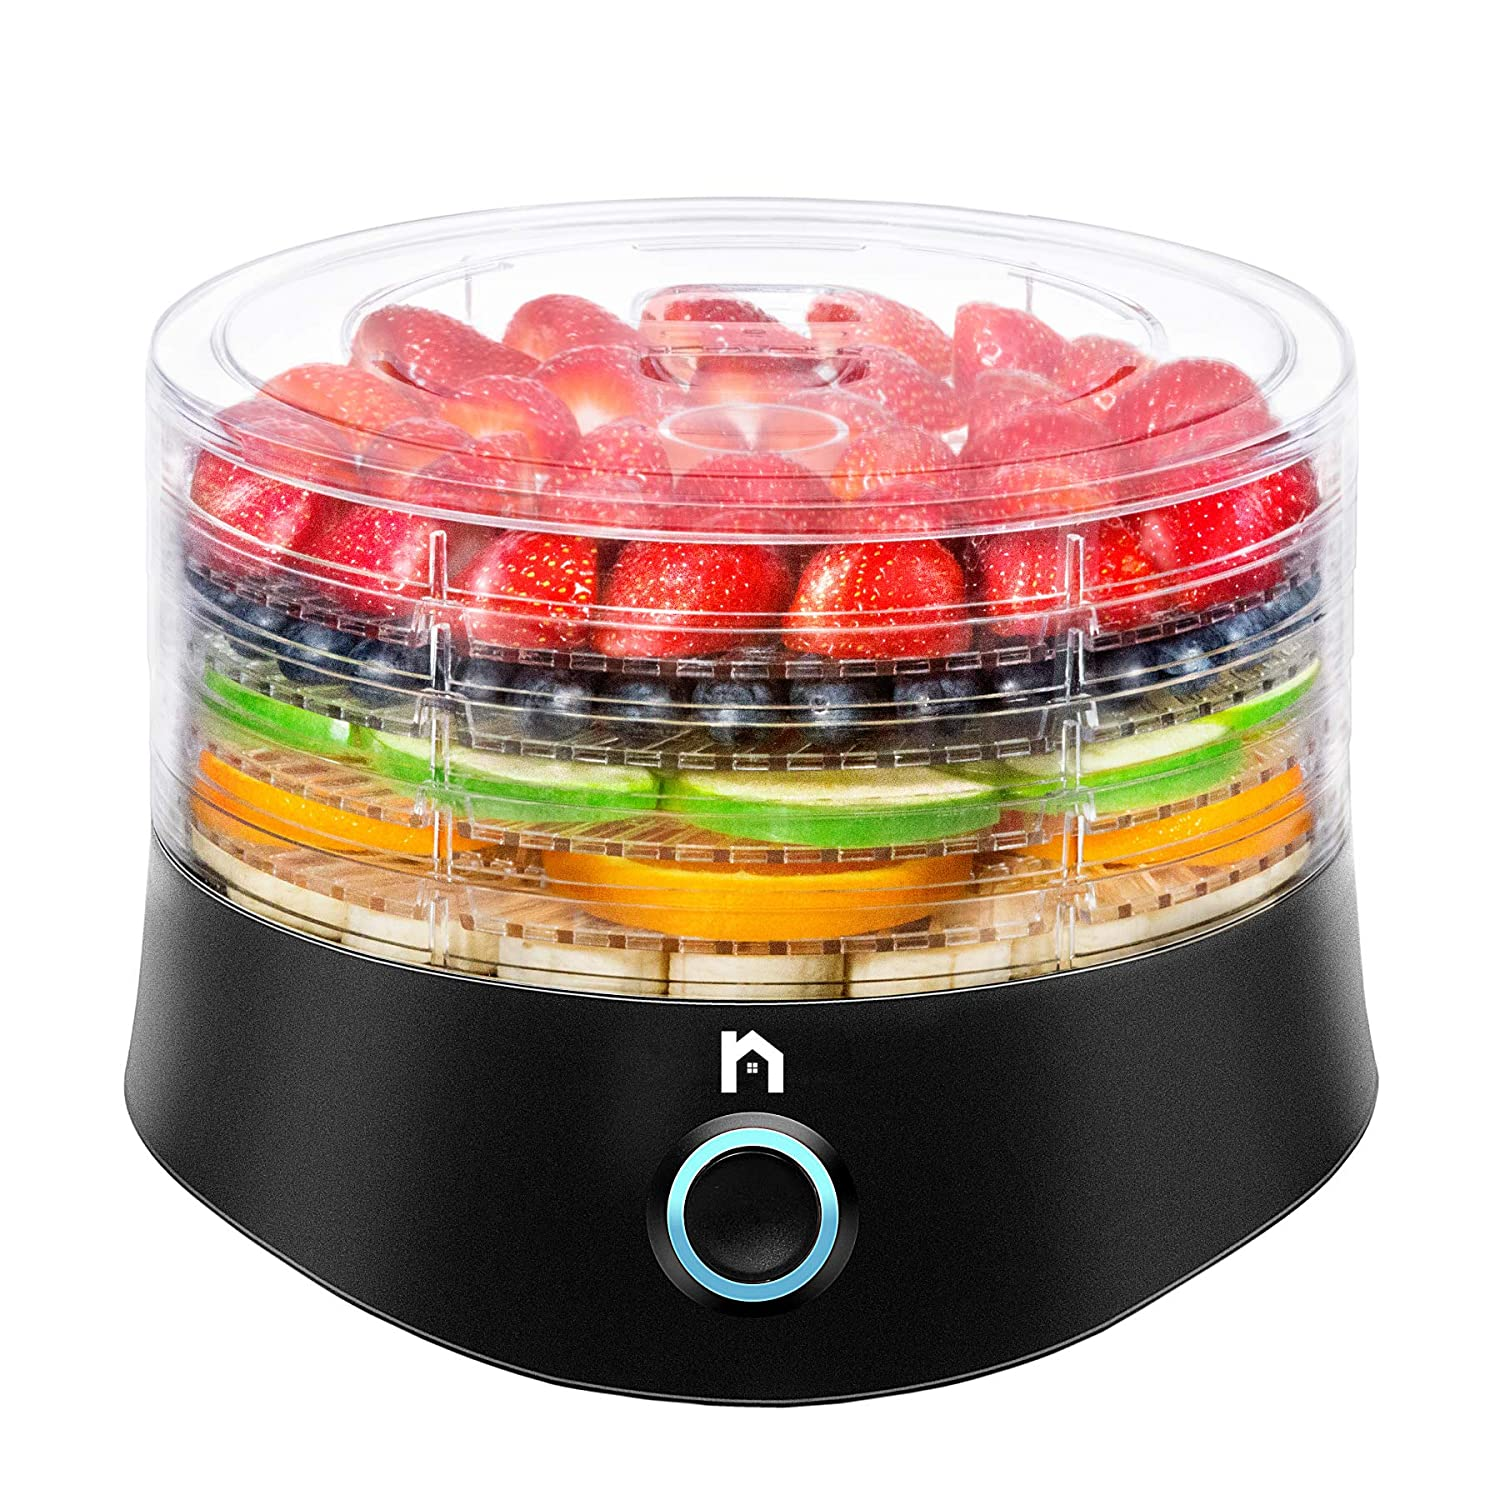 New House Kitchen 5 Round Dehydrator BPA-Free Stackable Transparent Trays Electric Professional Multi-Tier Food Preserver, Beef Jerky Maker, Fruit & Vegetable Dryer, Compact Black